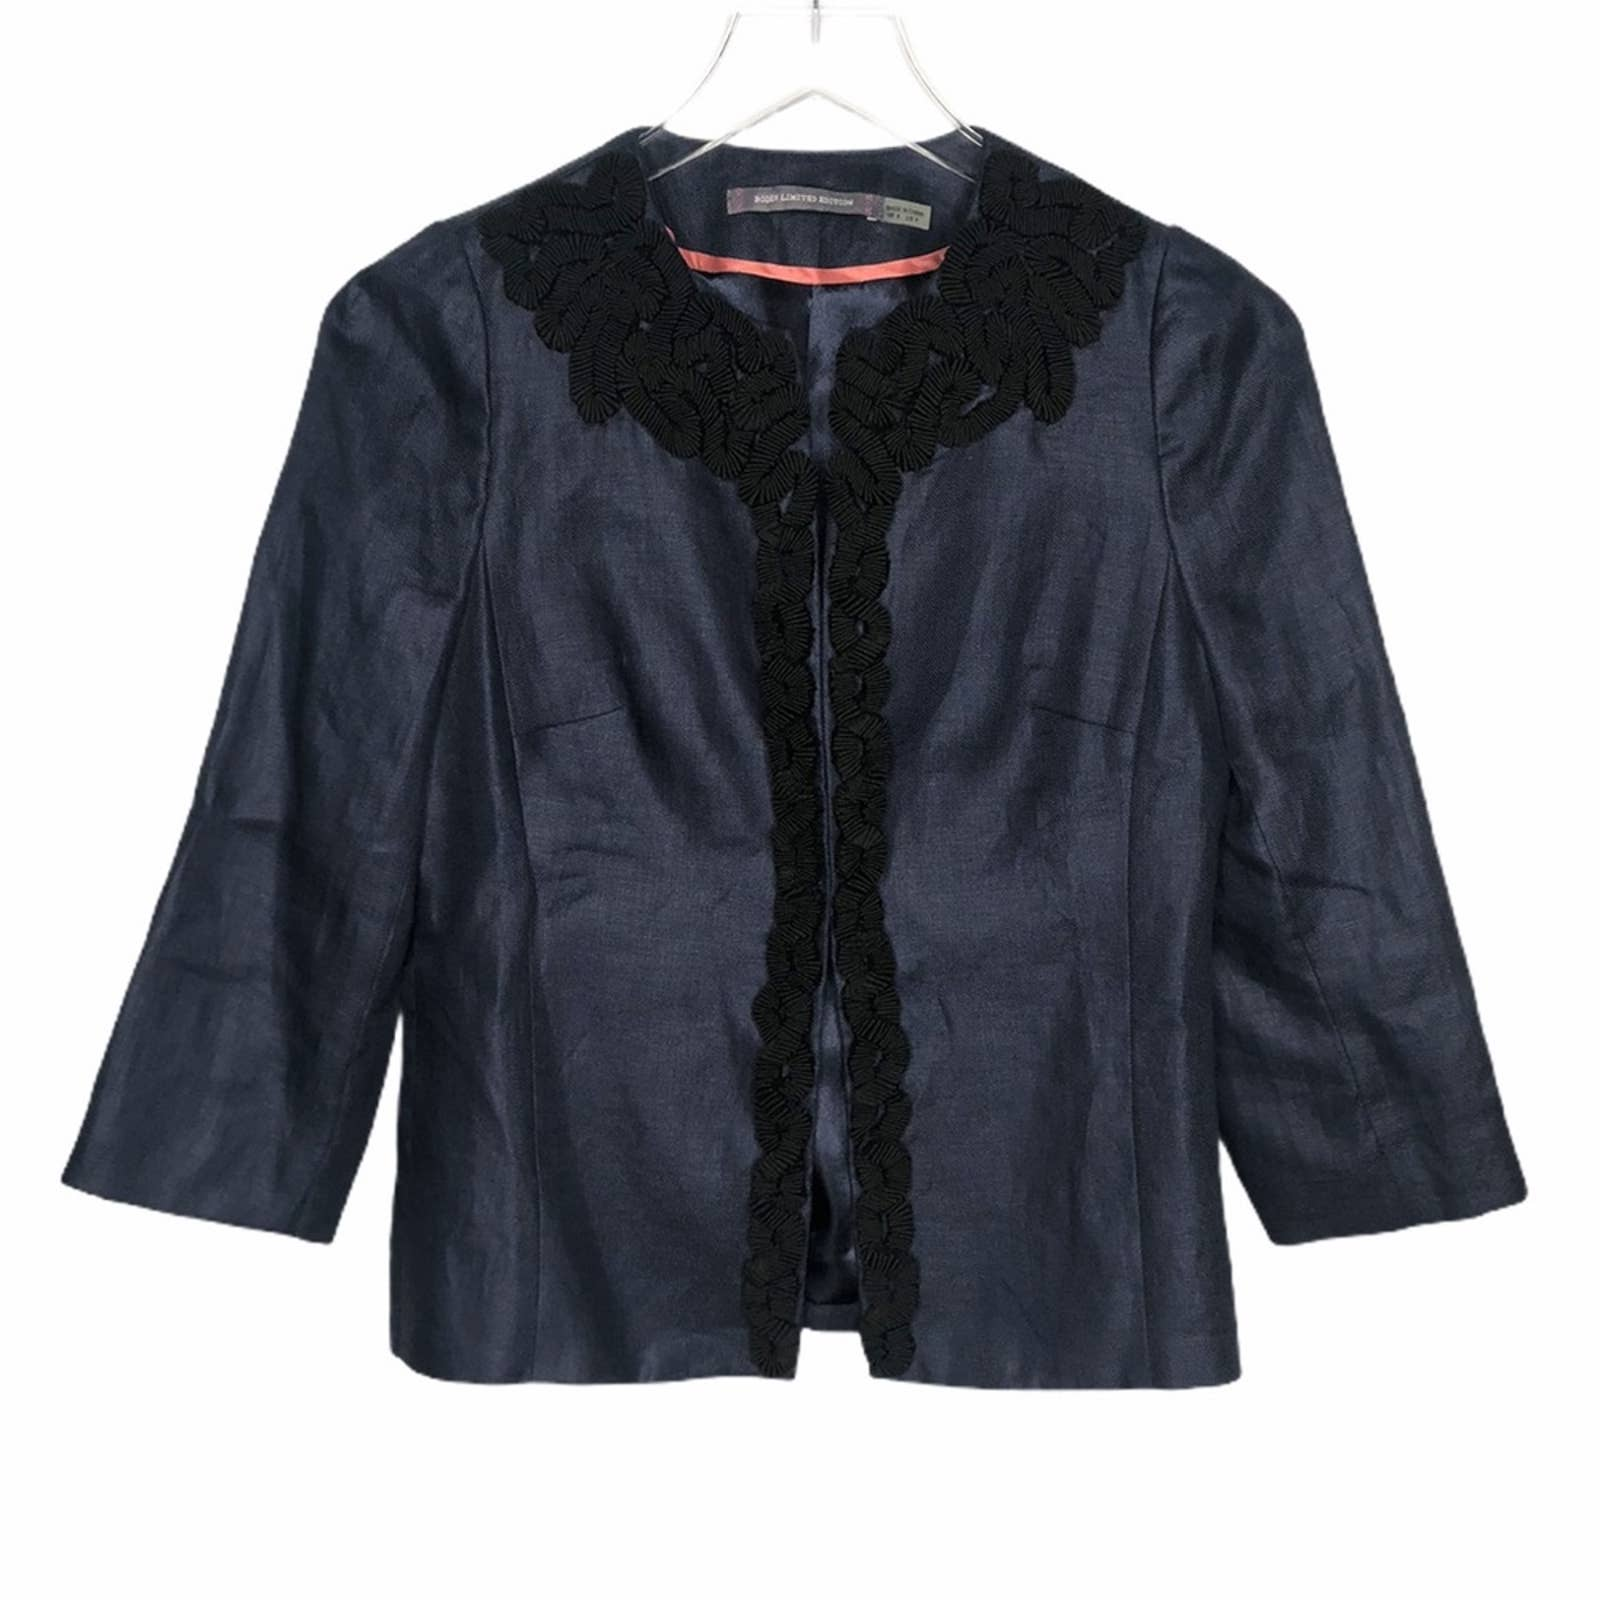 Product Image 1 - Boden Limited Edition Linen Jacket